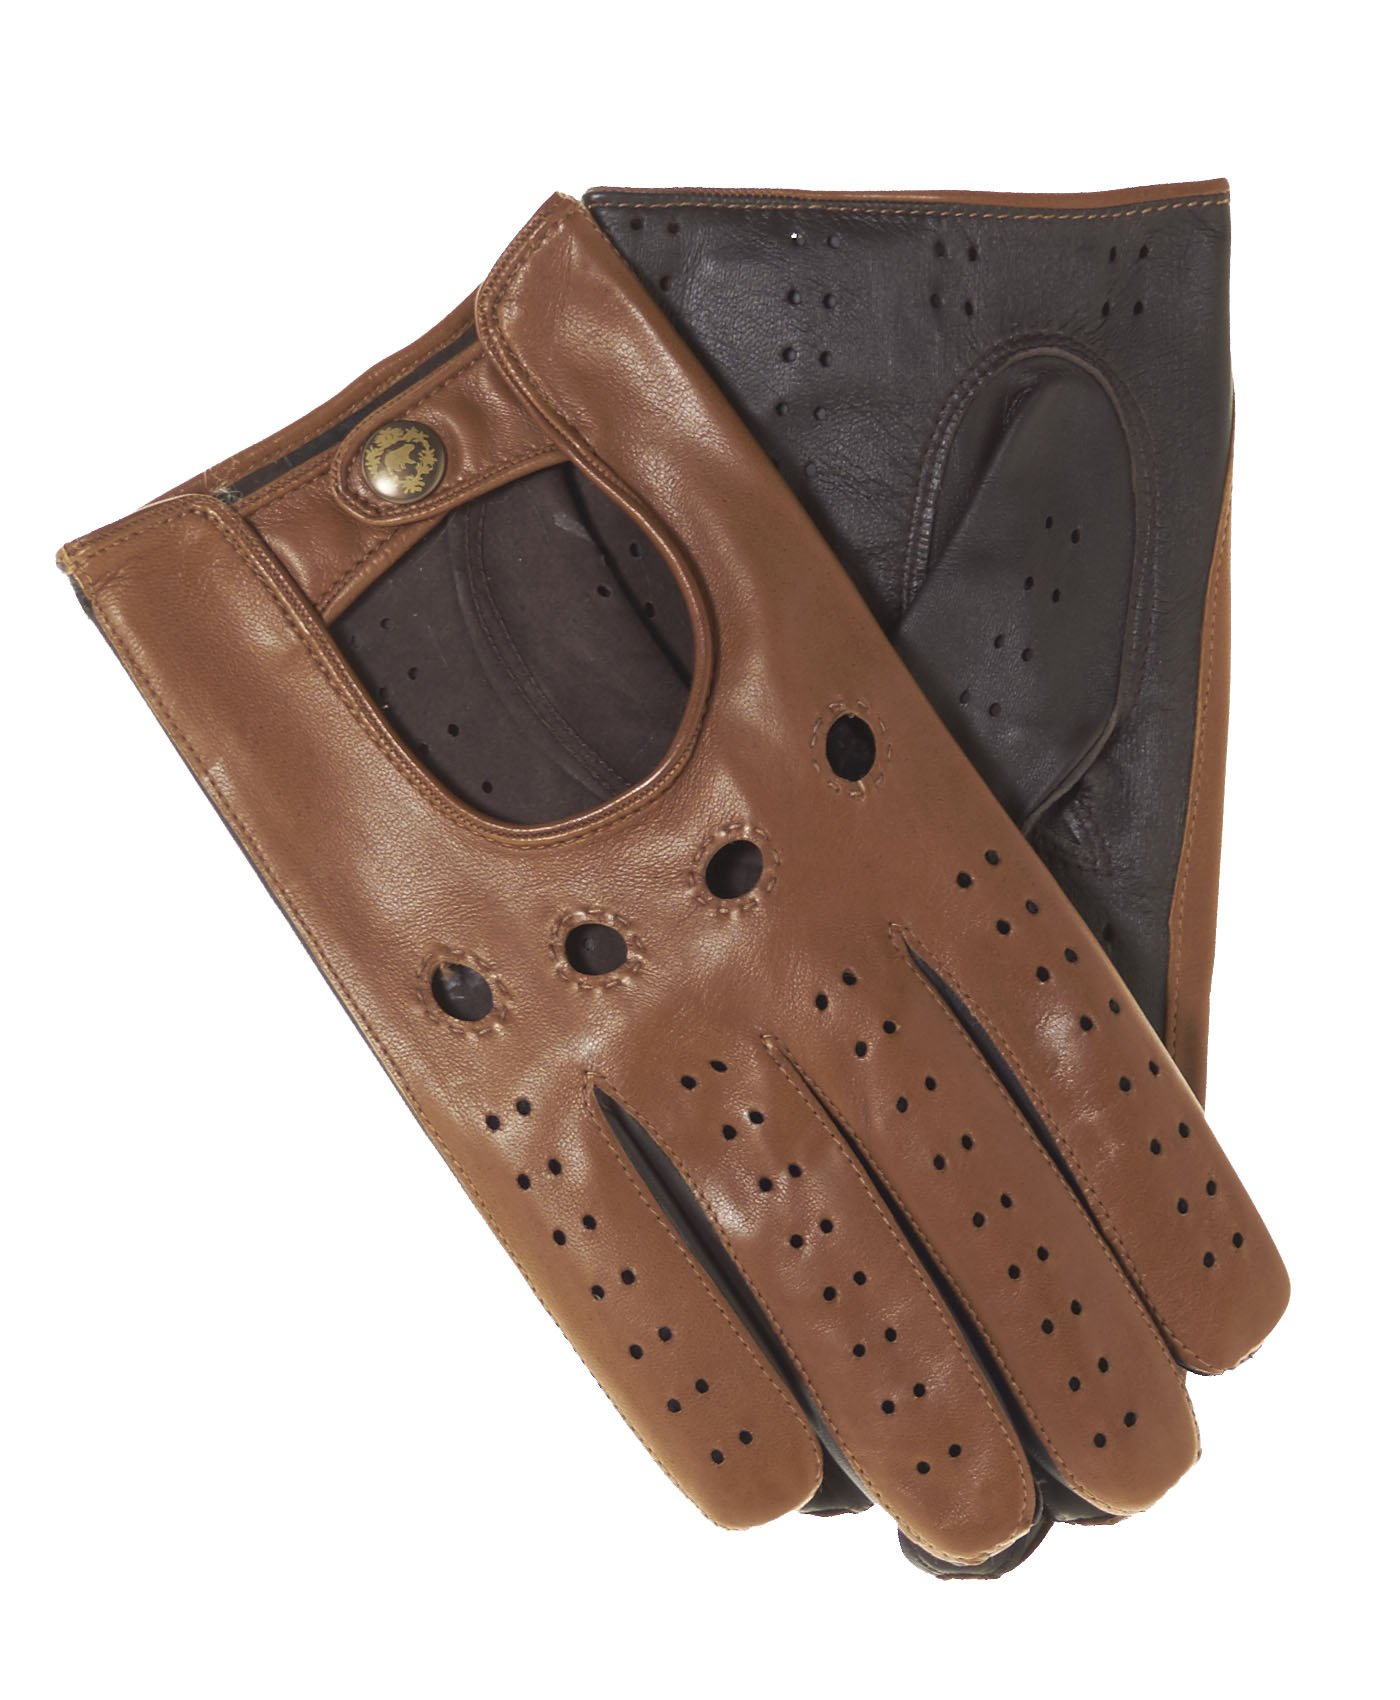 Fratelli Orsini Men's Italian Touchscreen Leather Driving Gloves Size 9 Color Camel/Brown